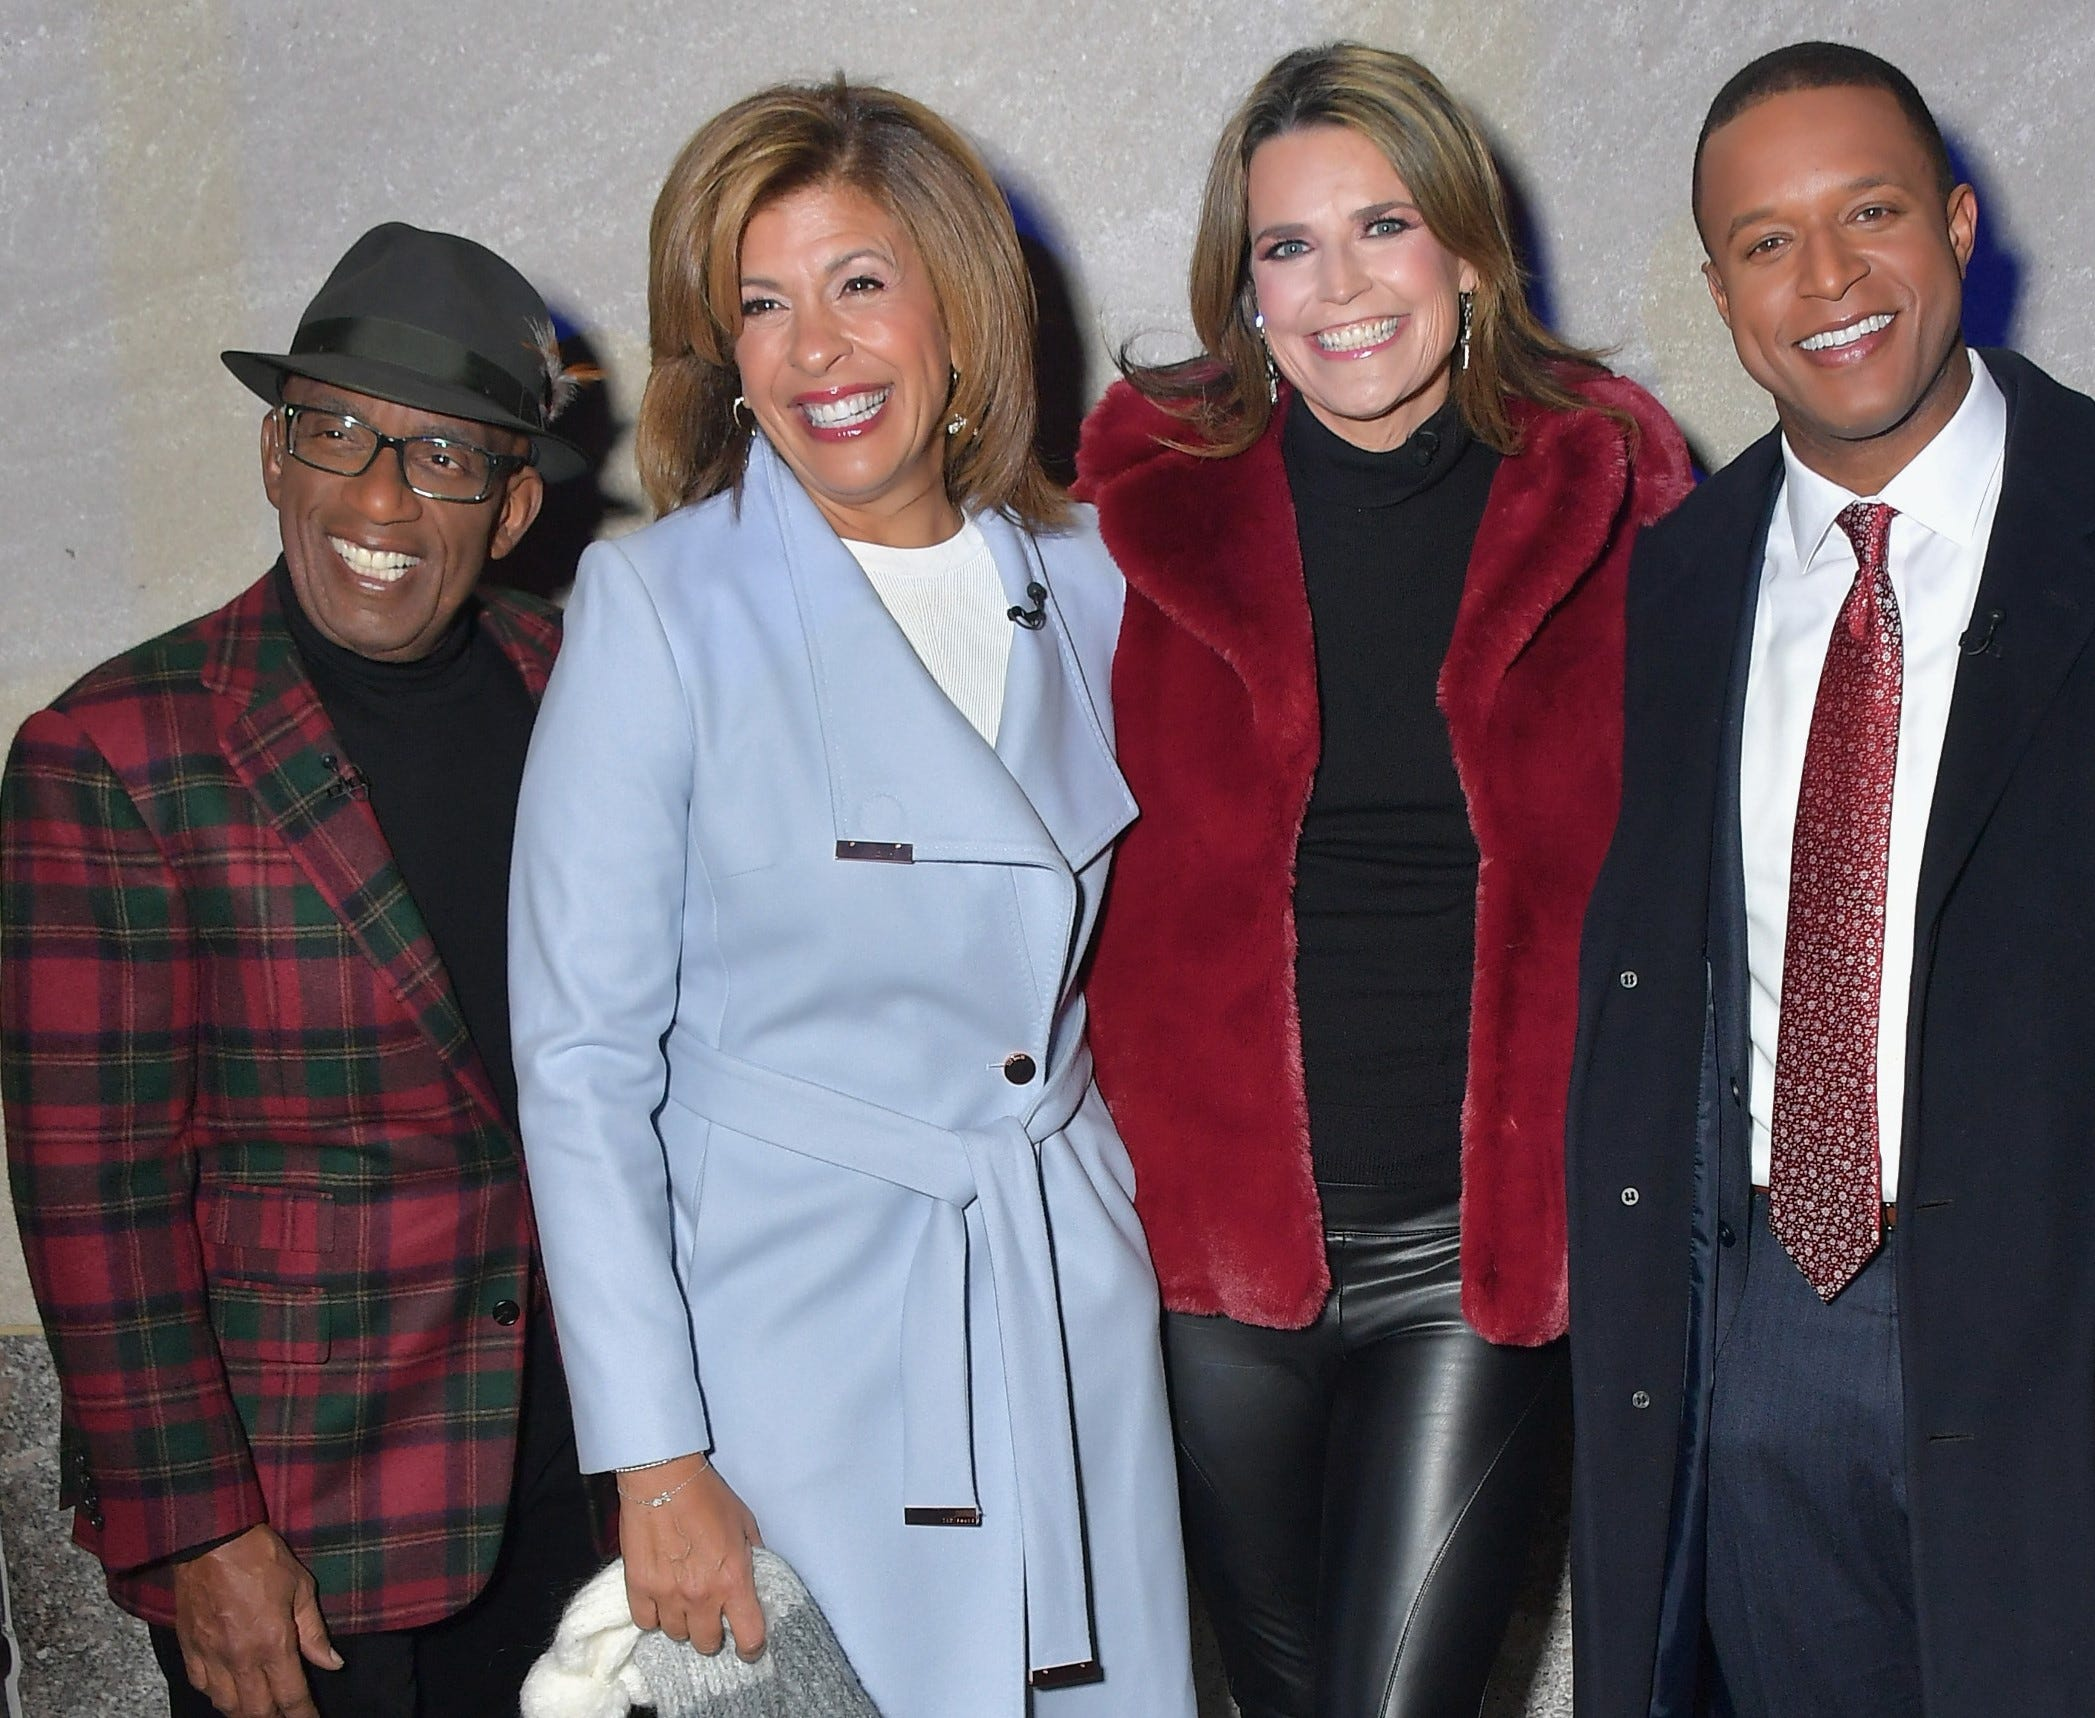 Savannah Guthrie will host  Today  show at home with  sore throat  amid coronavirus pandemic